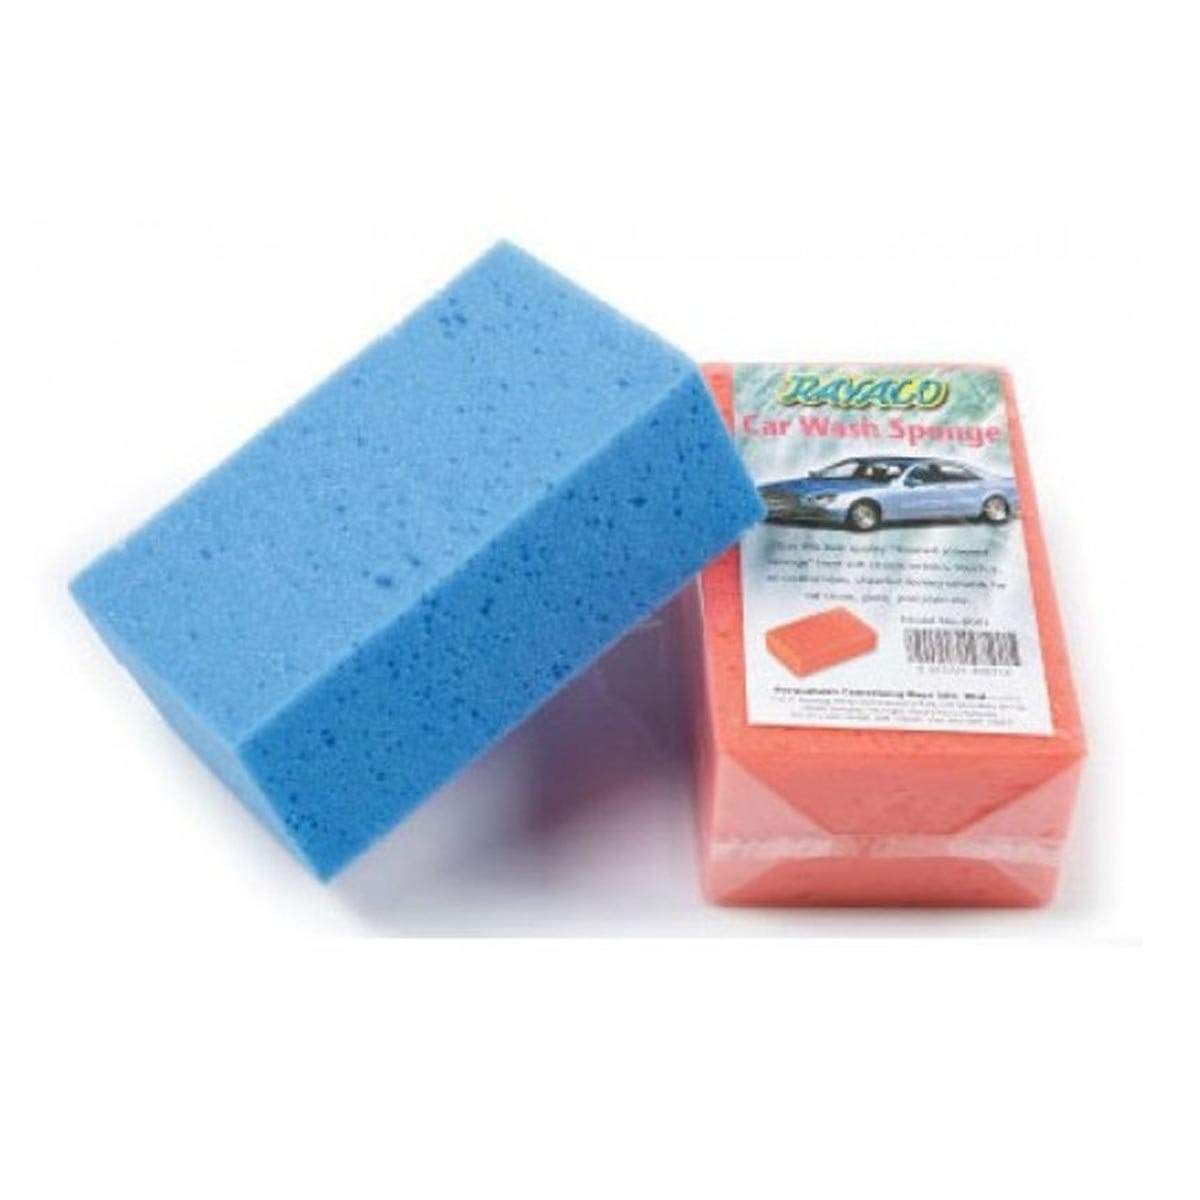 Rayaco 8001 Superior Car Wash Sponge (1pc)